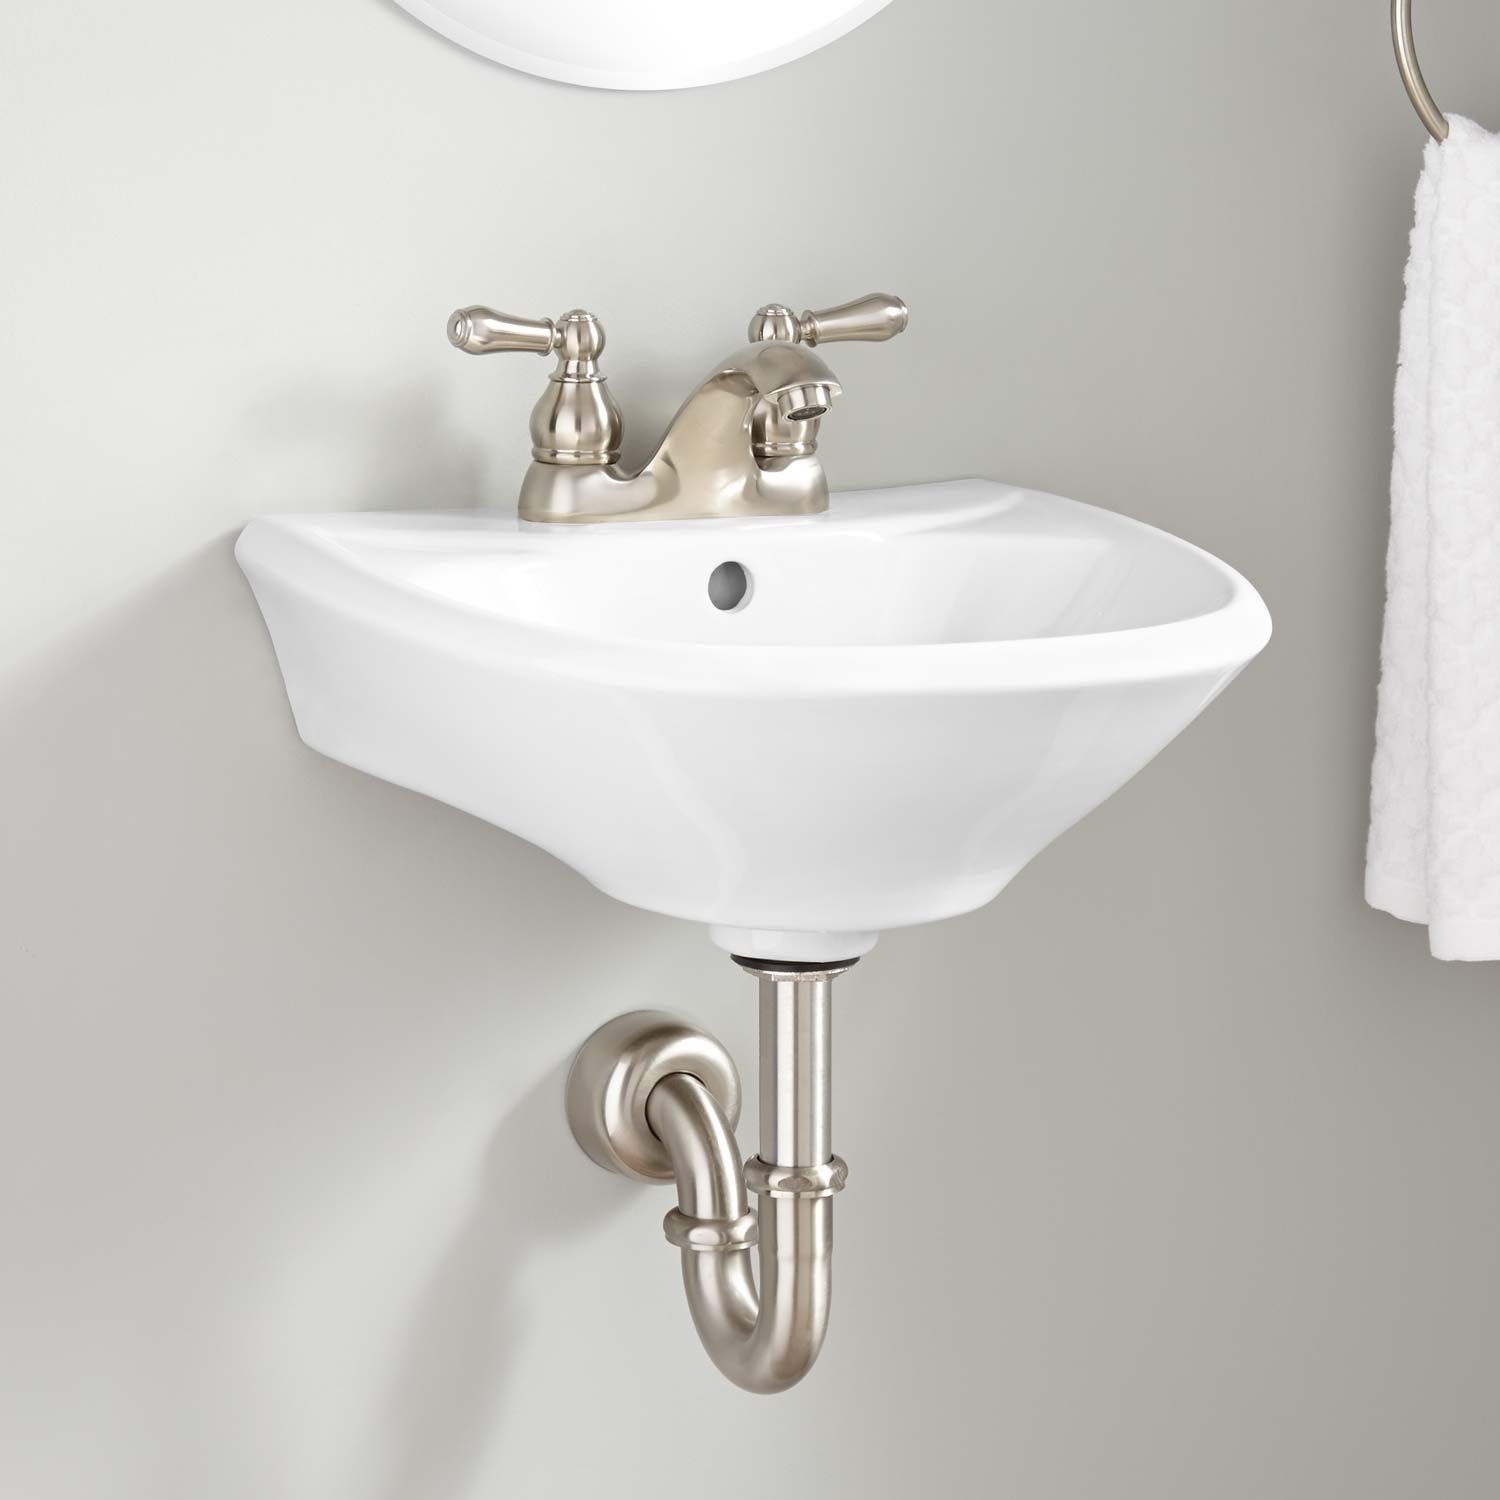 Modular Farnham Mini Porcelain Wall-Mount Bathroom Sink - Bathroom throughout Elegant Small Bathroom Sinks Wall Mount